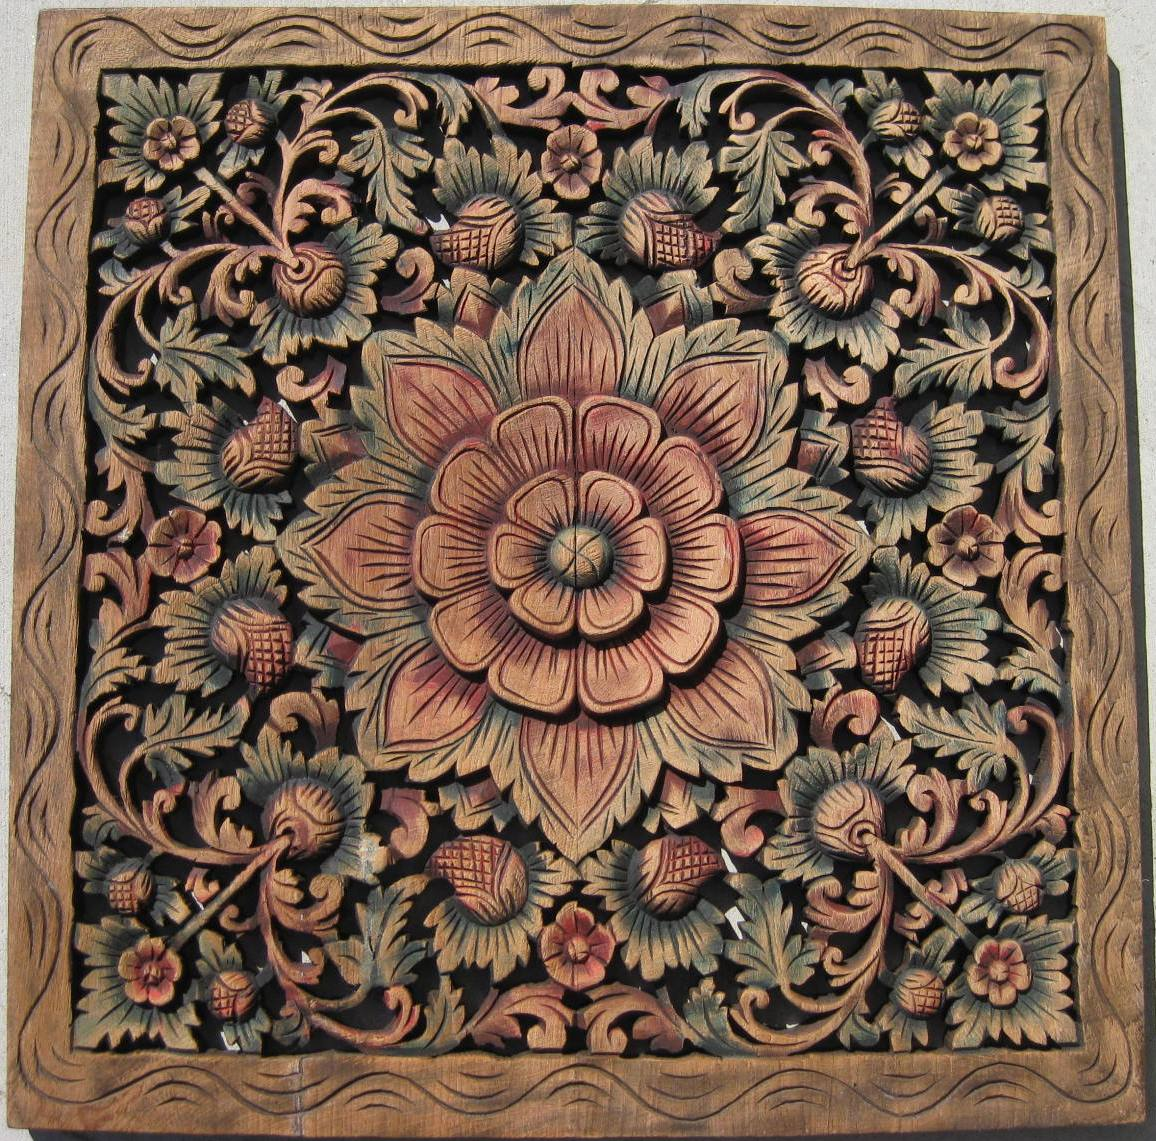 2'x2' Teak Wood Panel Java Finish ... - Custom Hand Carved Teak Wood Panels/ Hand Carved Teak Wood Panels